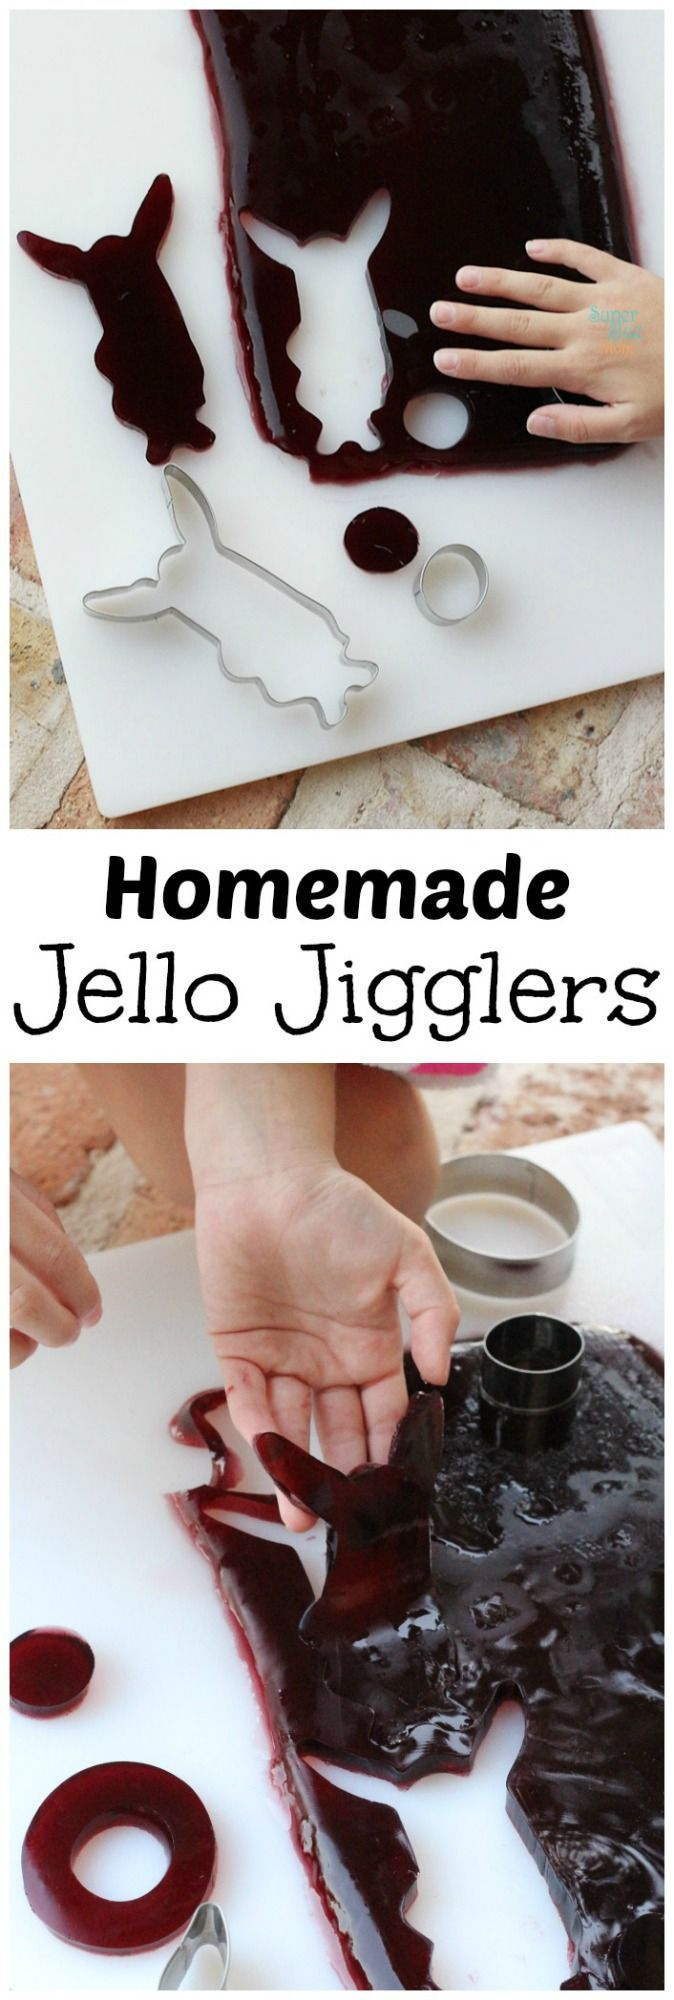 This healthy version of homemade jello jigglers recipe will rock your kid's world! Only two ingredients you can actually pronounce.